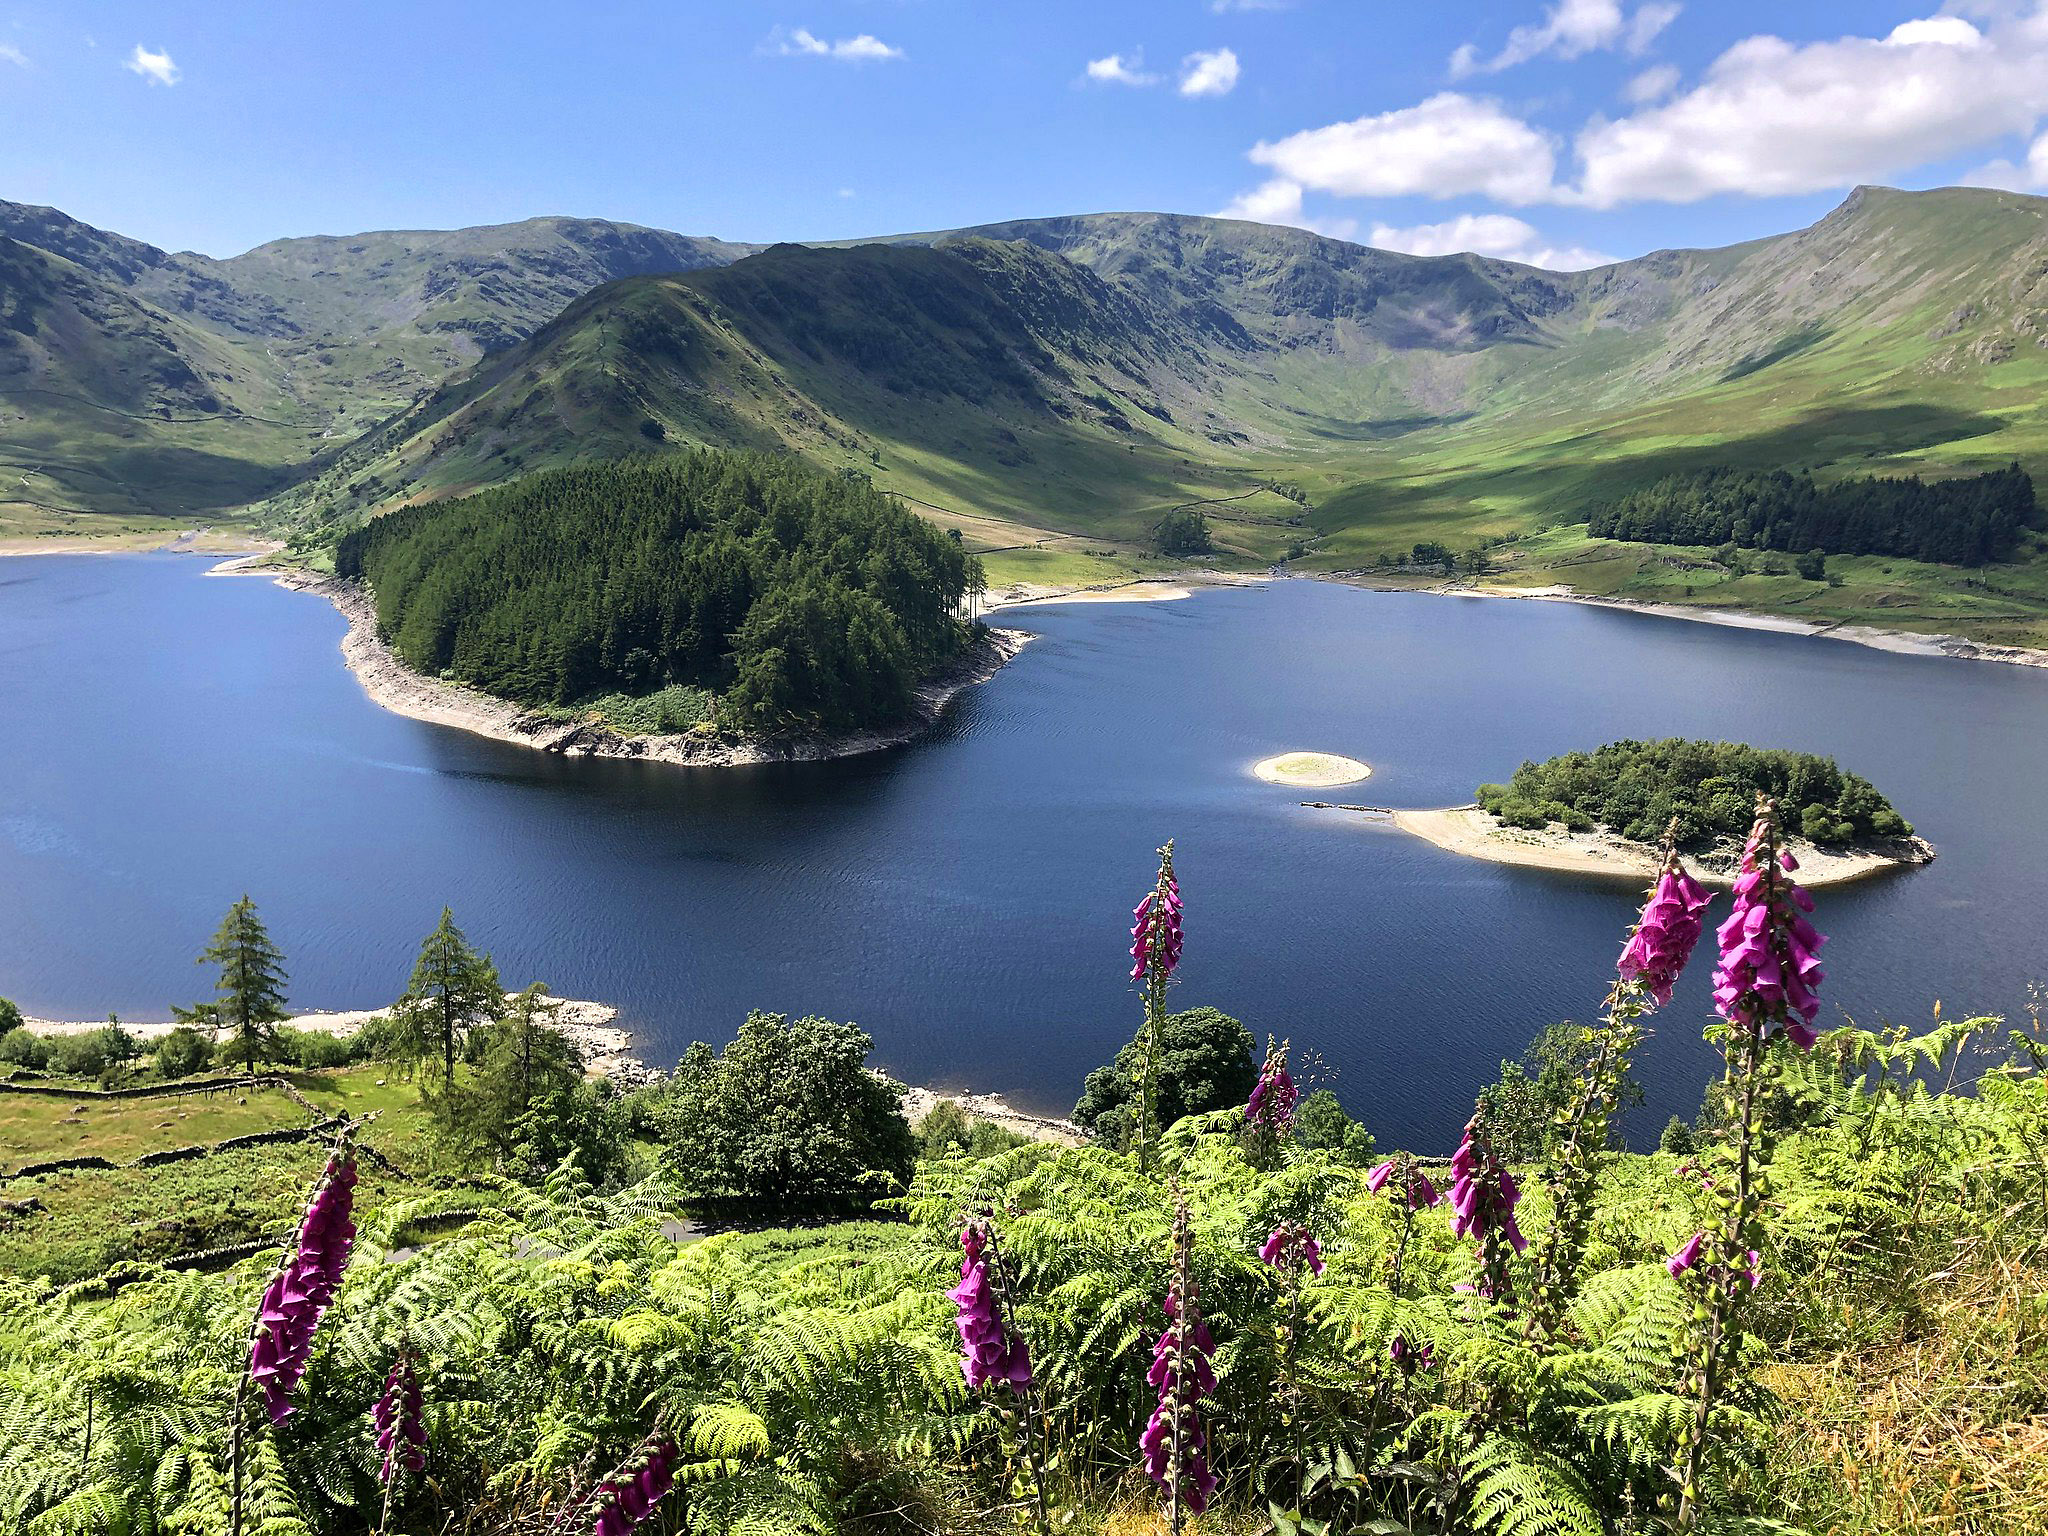 Haweswater & Riggindale by Chris E Rushton.jpg